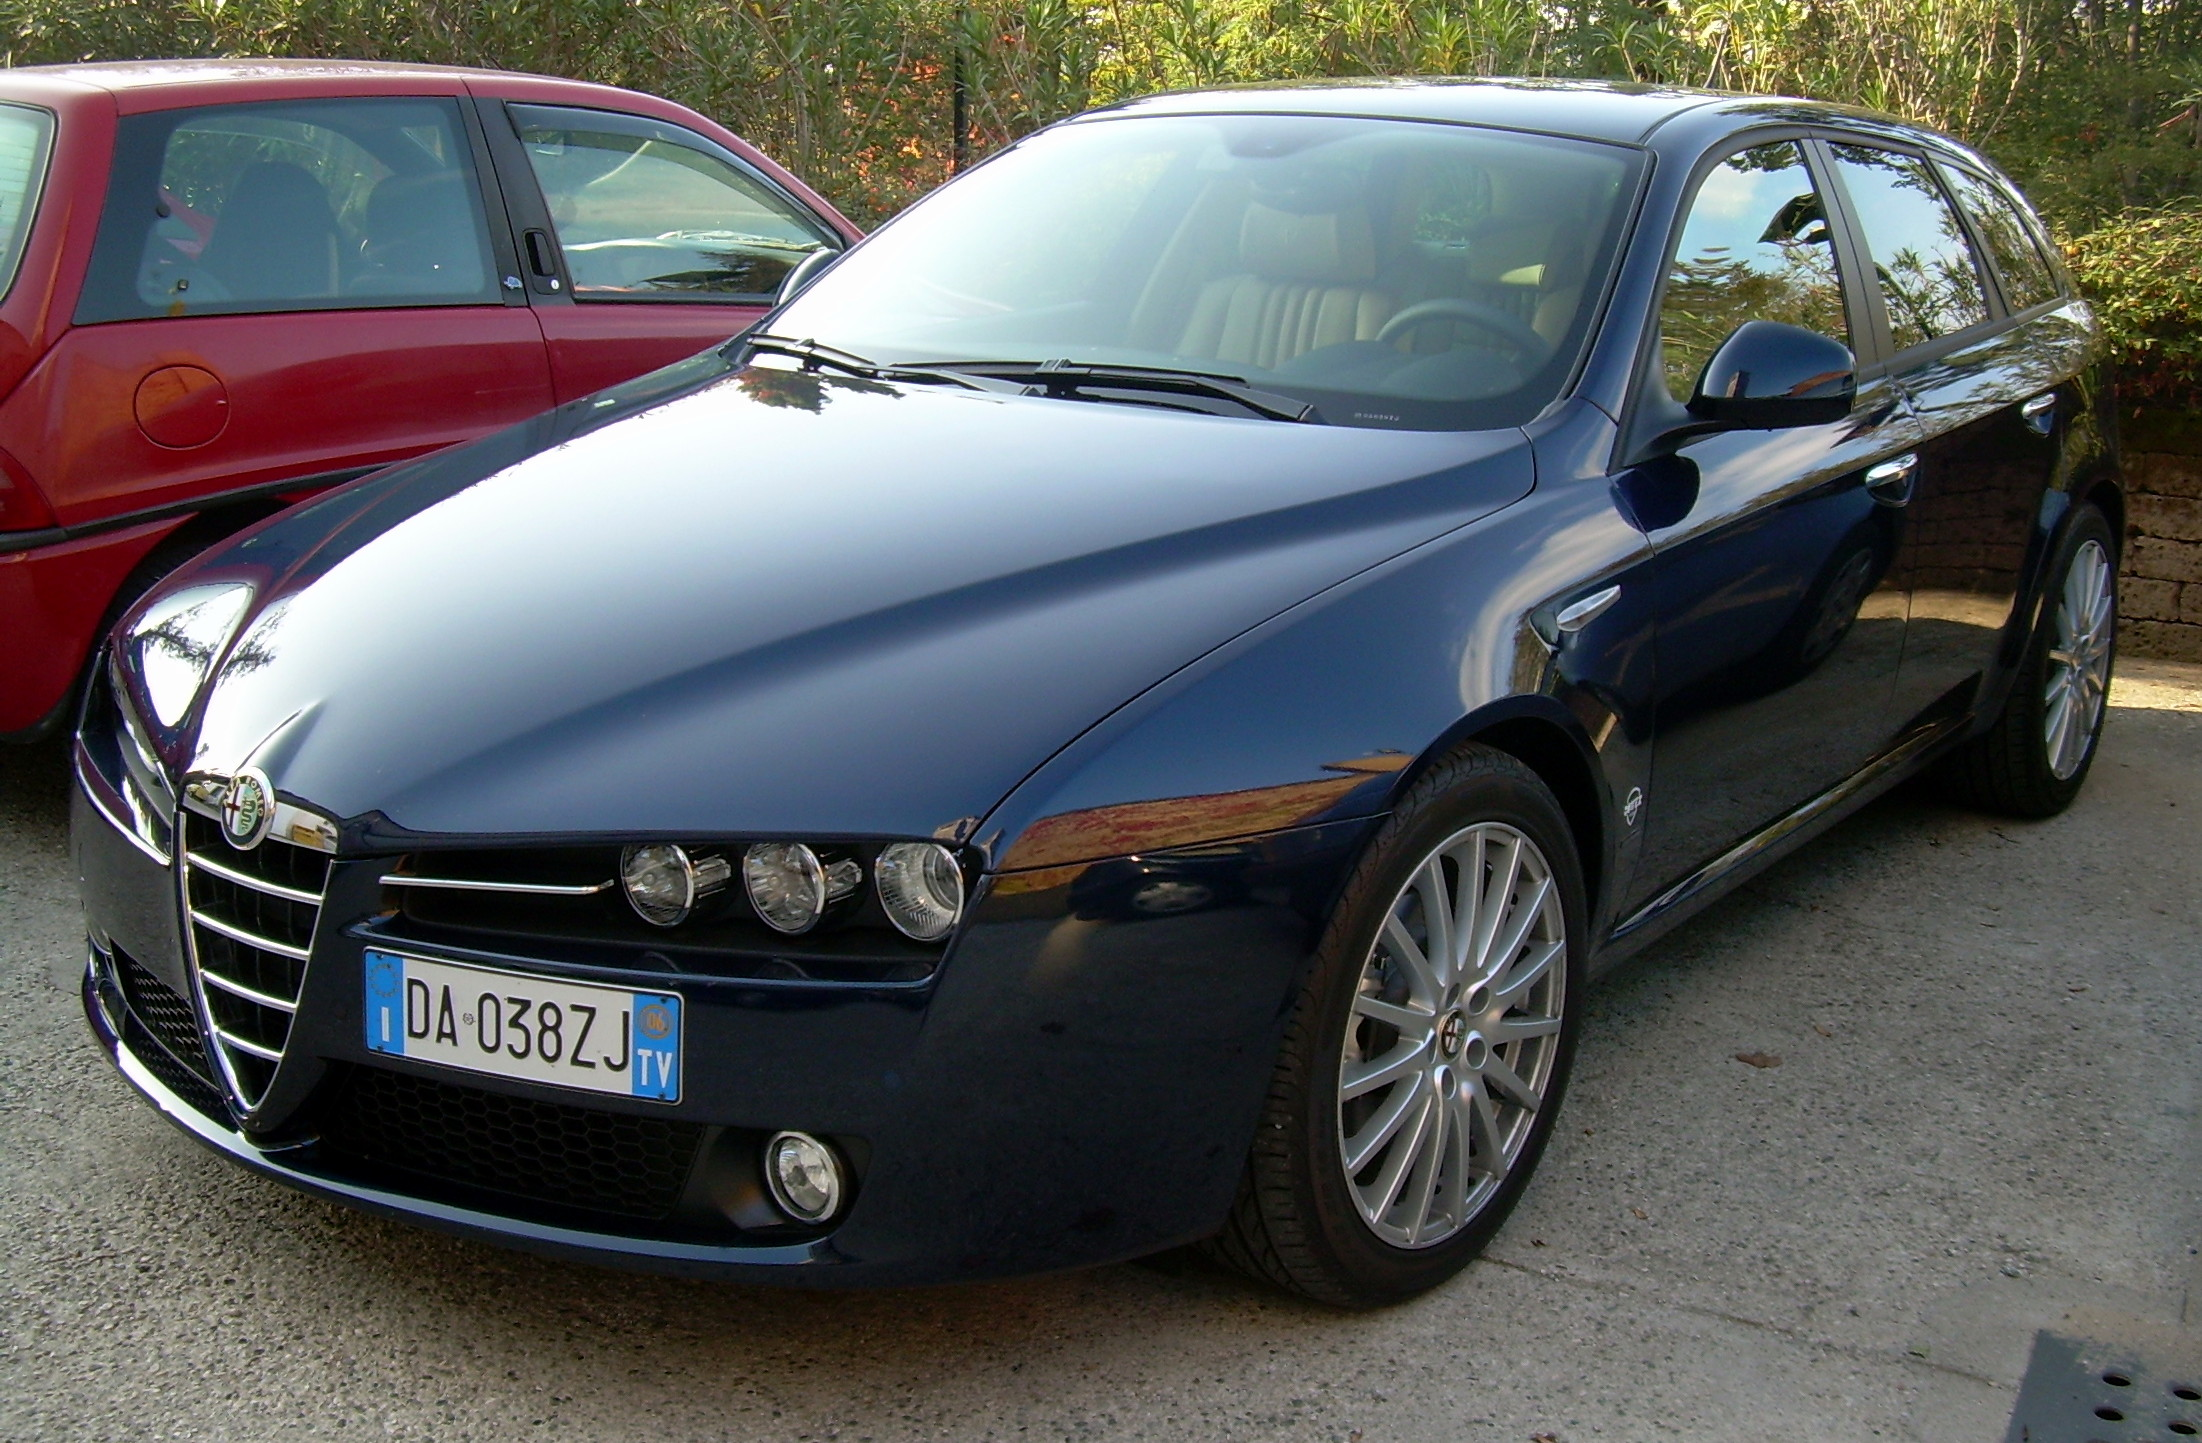 file alfa romeo 159 sw jpg wikipedia. Black Bedroom Furniture Sets. Home Design Ideas